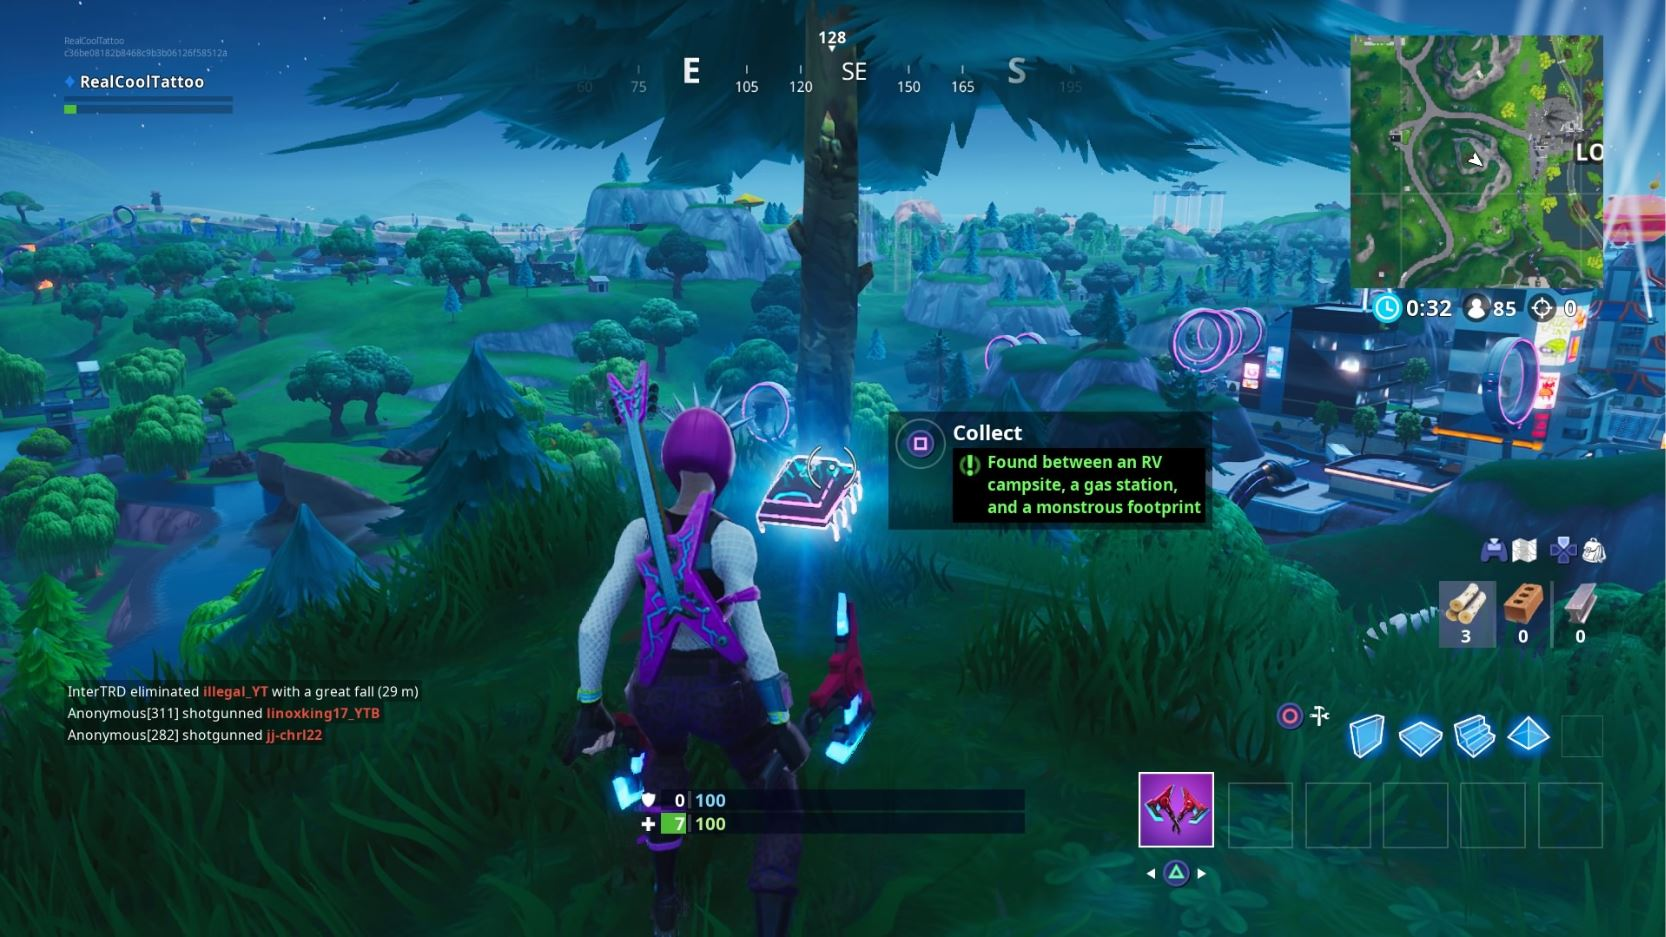 Fortnite Fortbyte 23: between RV campsite, gas station, monstrous footprint location